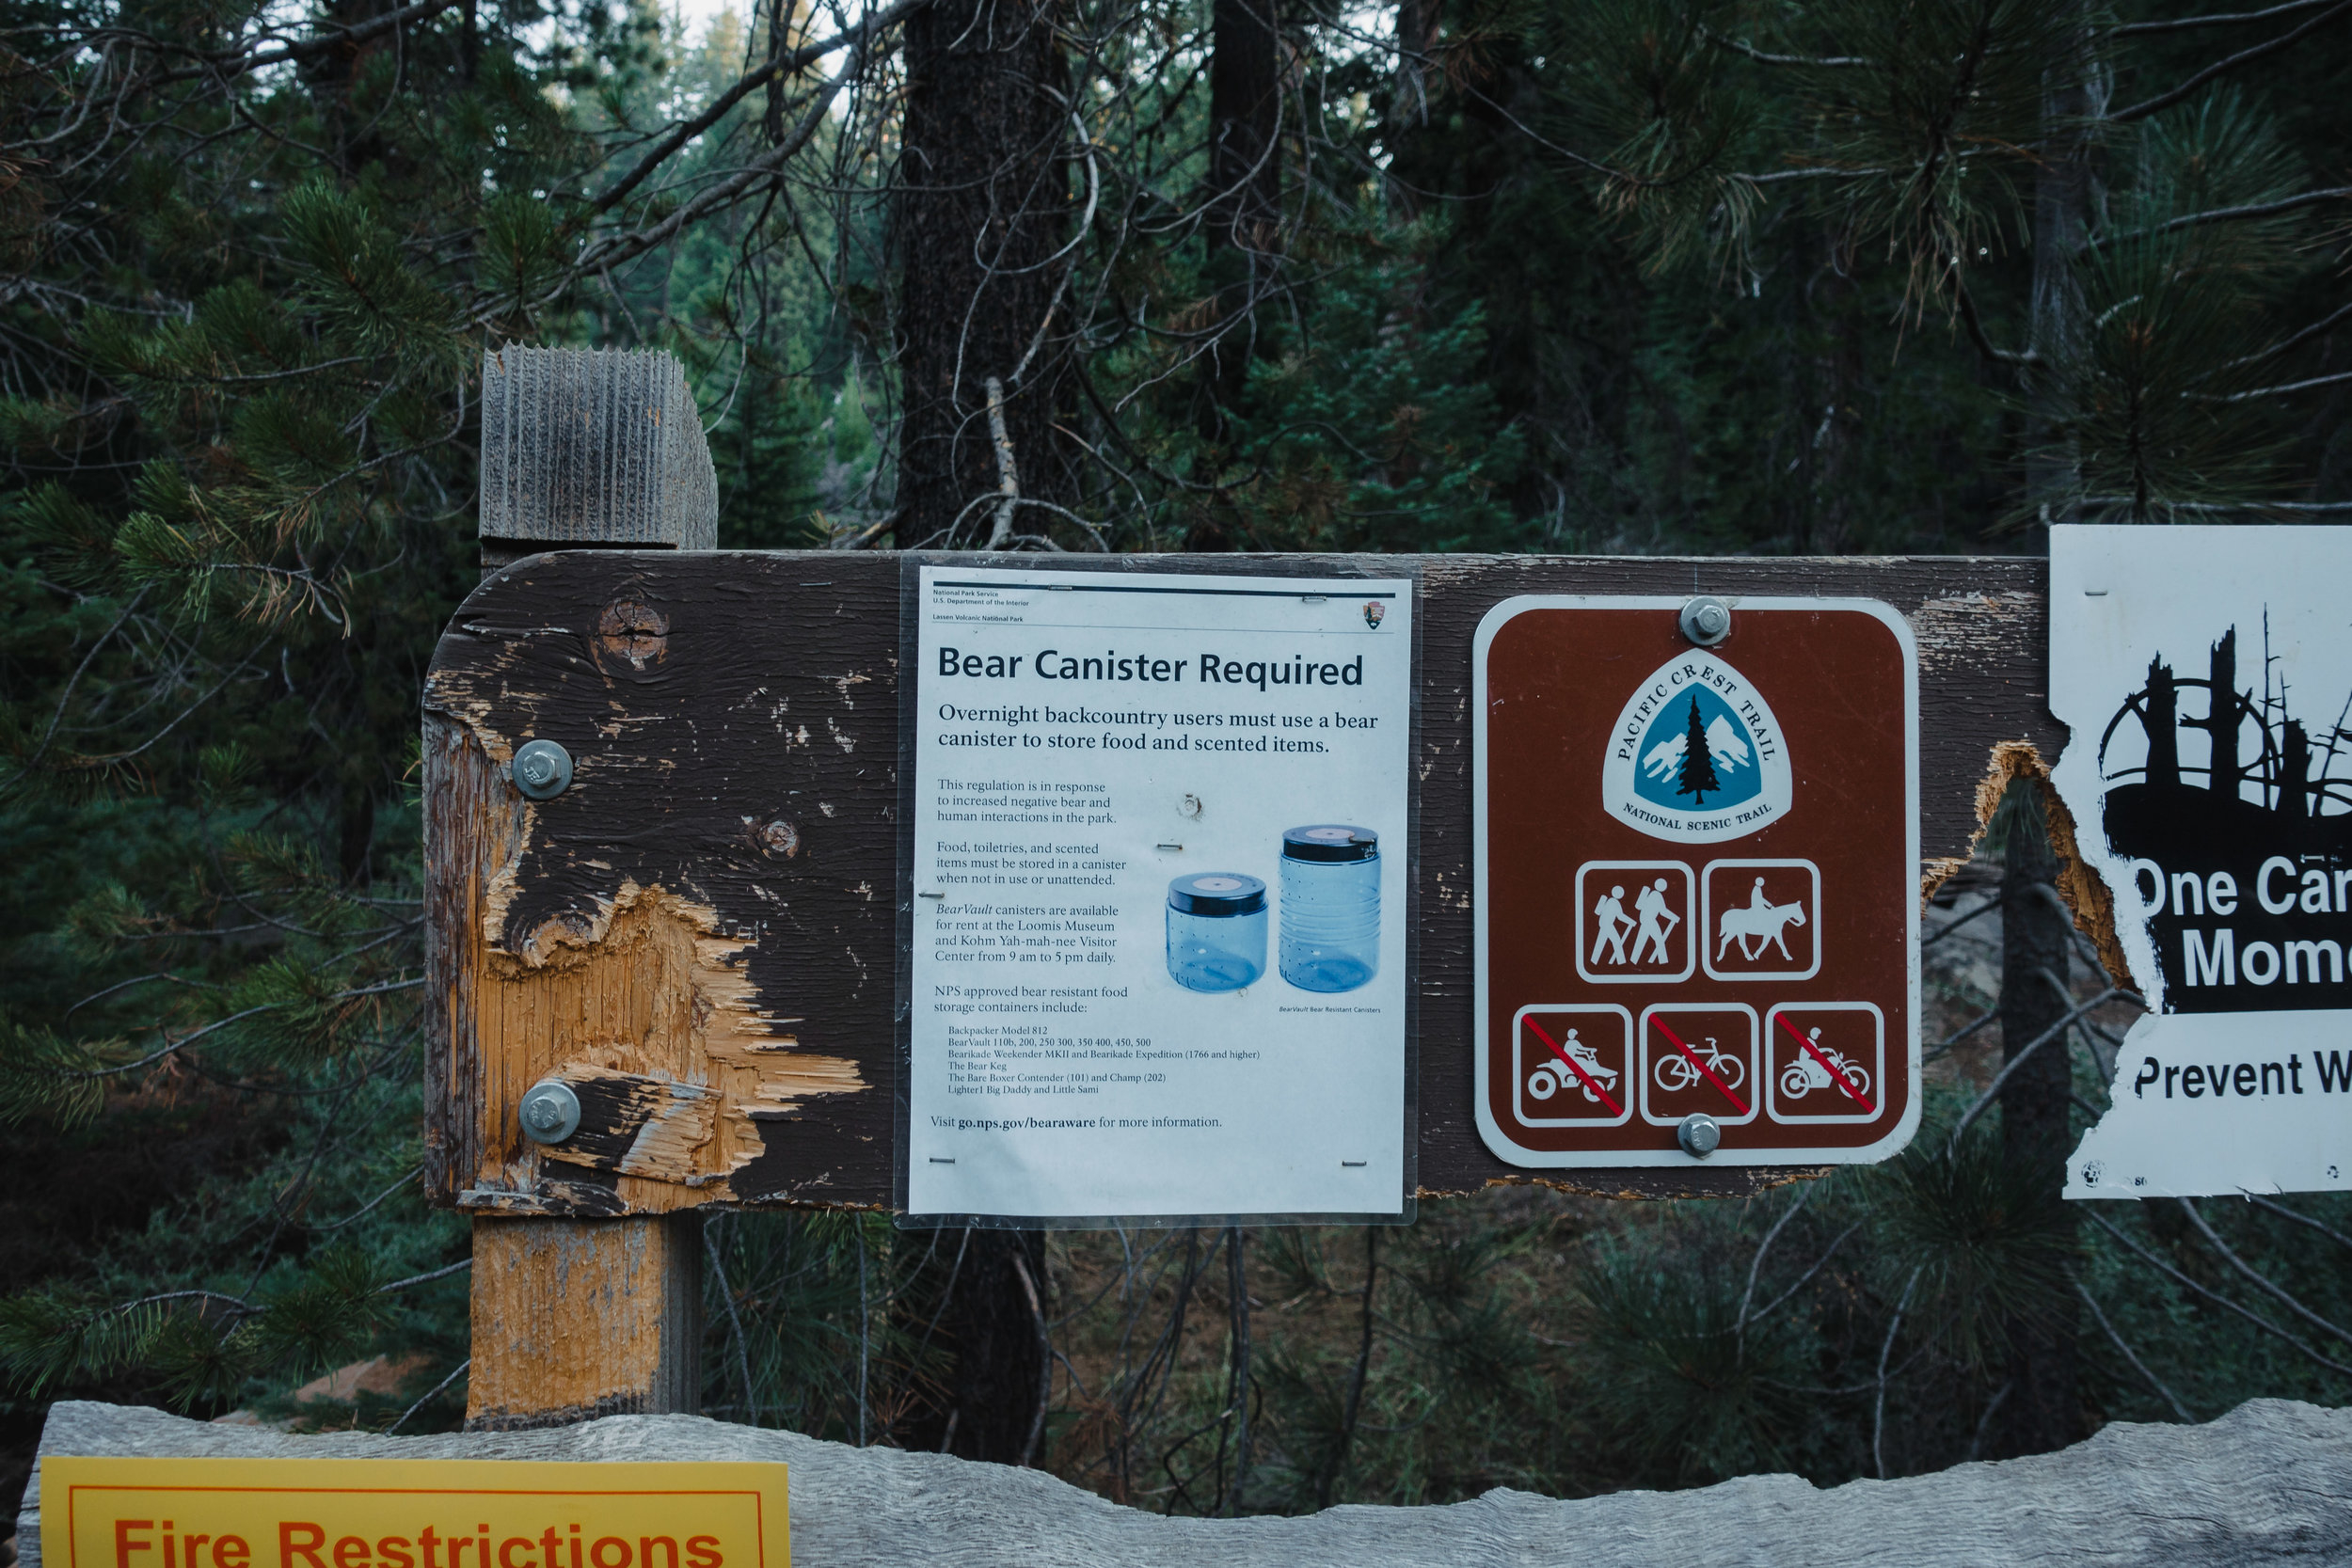 Sign about bear canister requirement.